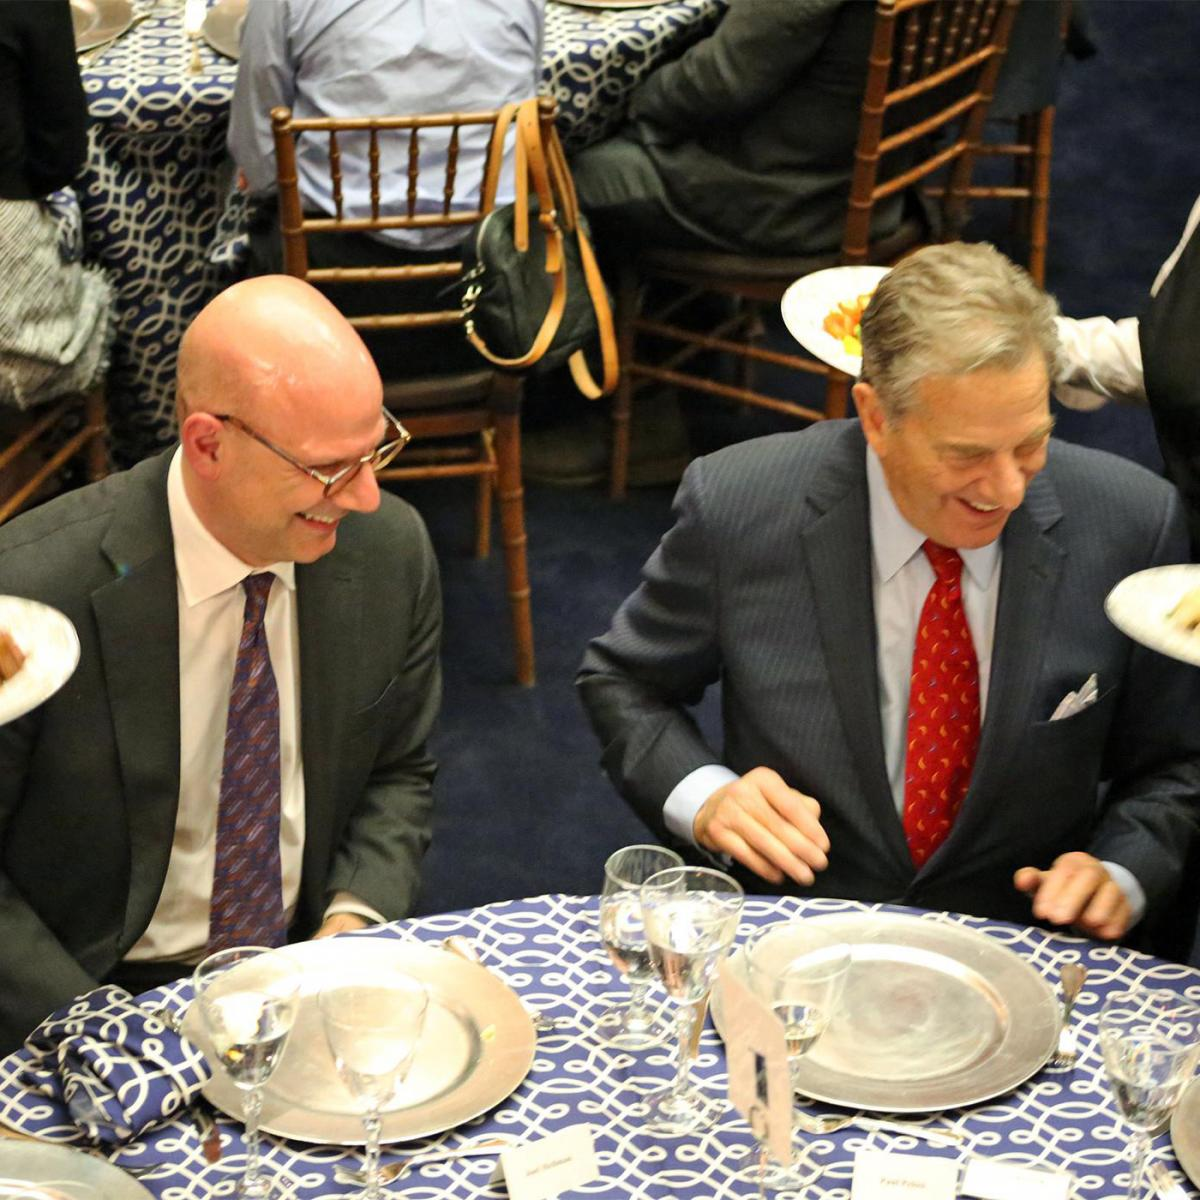 Joel Hellman and Paul Pelosi seated at a table during the scholars program at the SFS Board of Advisors Dinner in Riggs Library